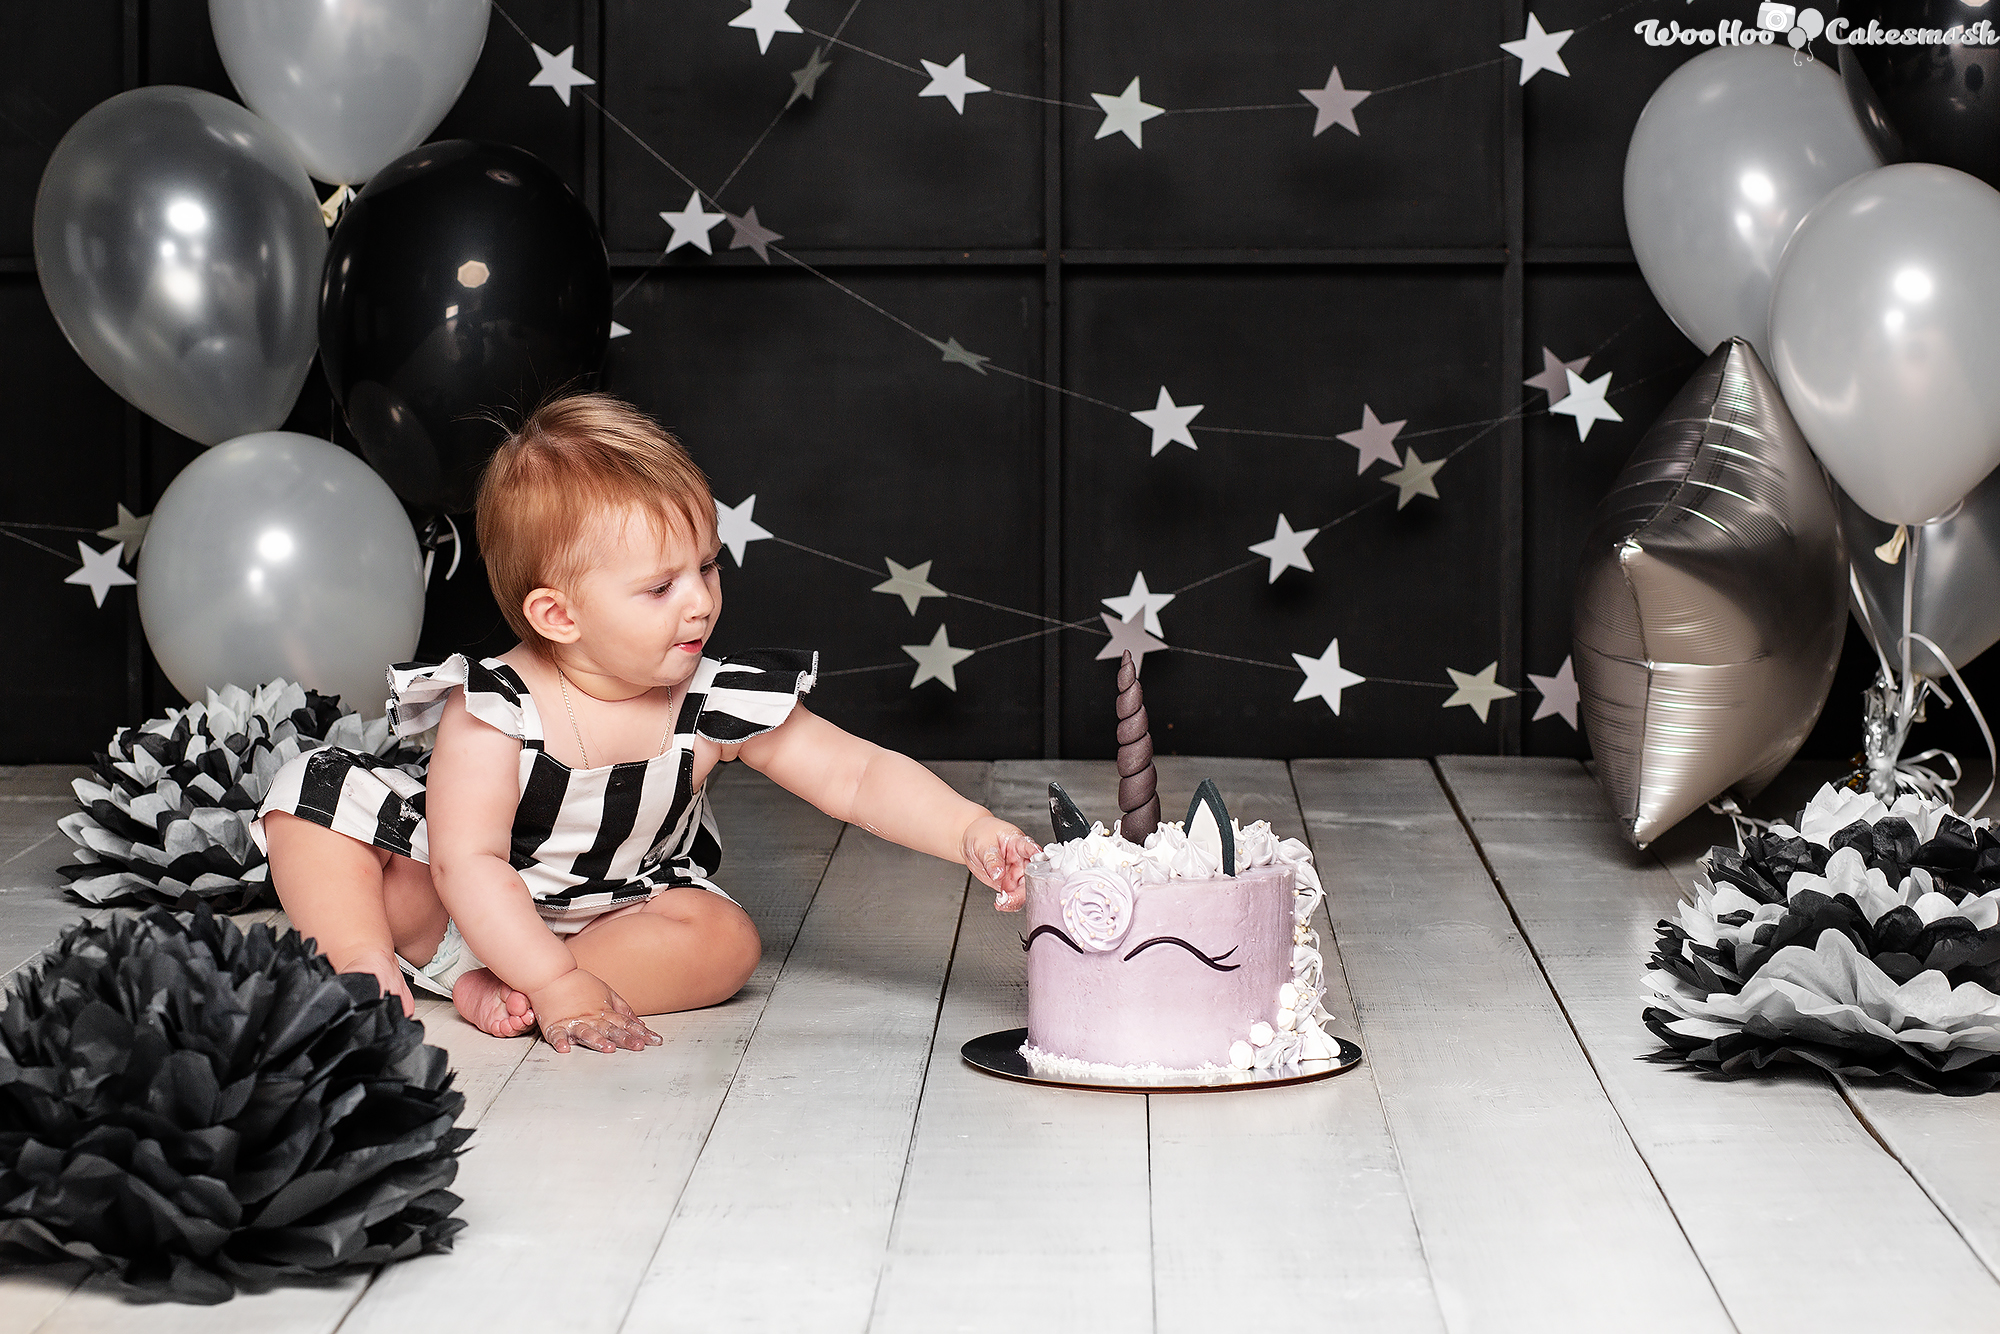 woohoo_cakesmash_Eva_black_and_white_4